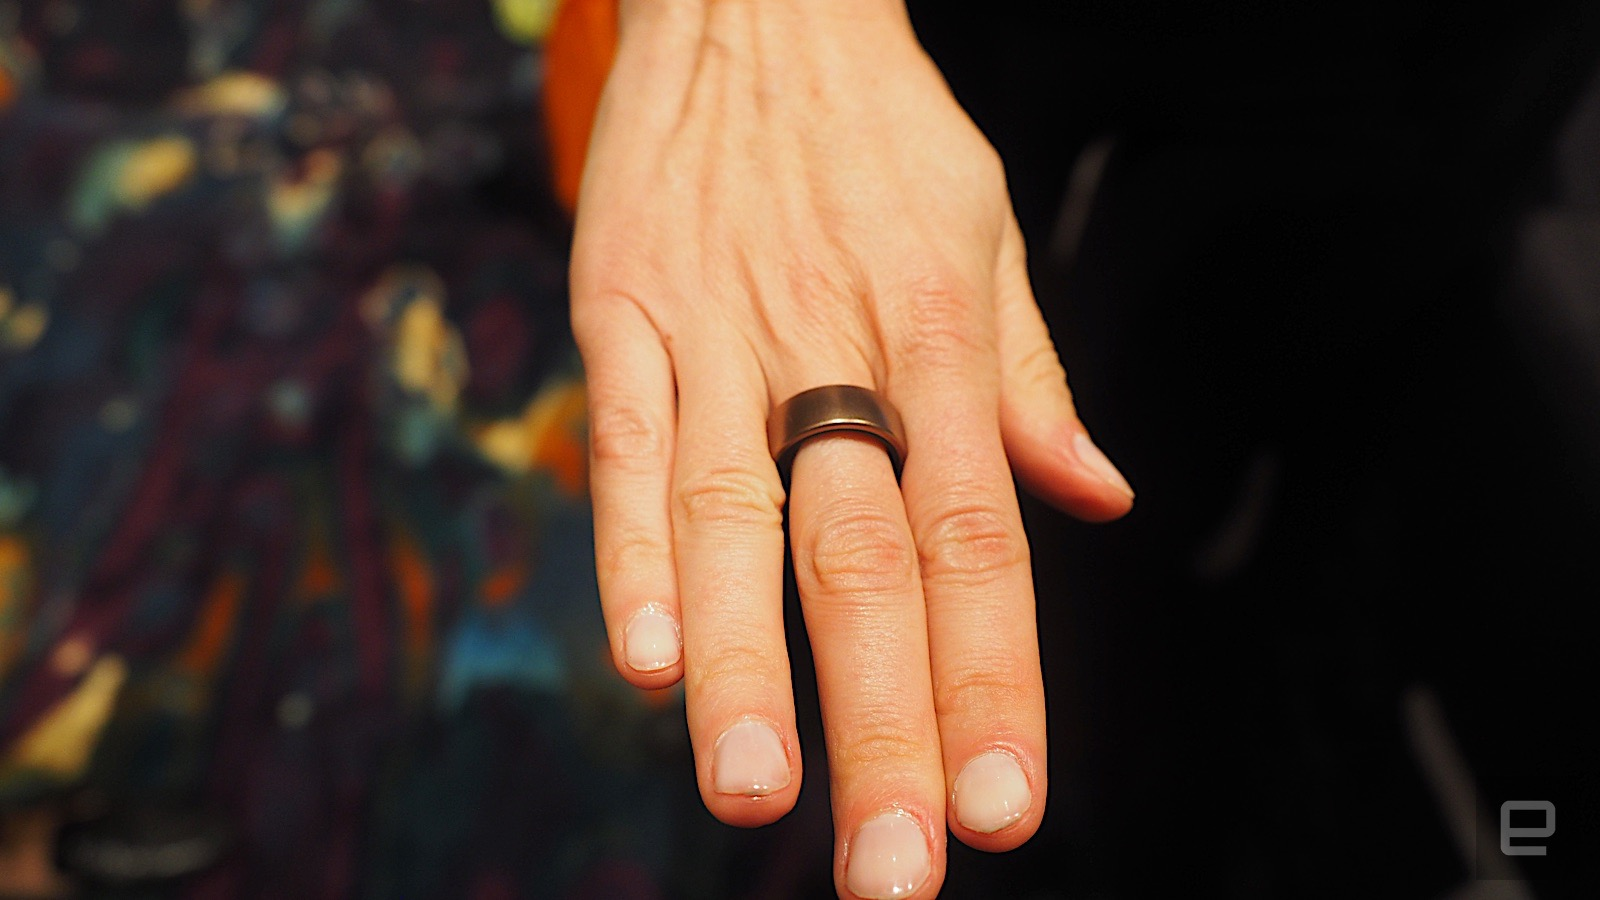 Motiv's fitness tracking ring now knows even more about you